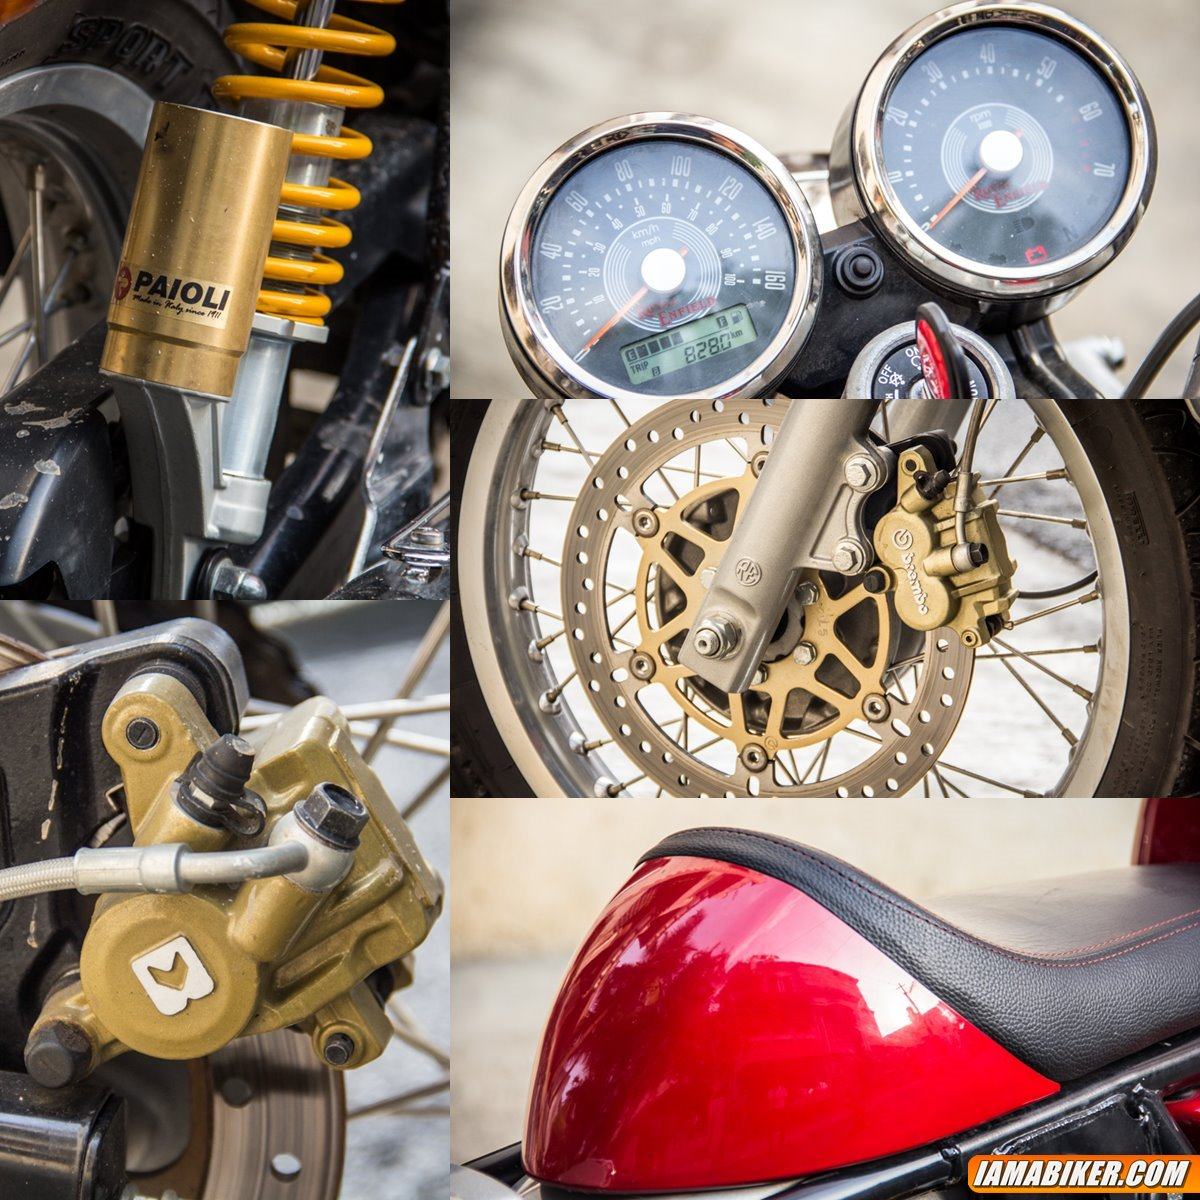 royal enfield continental gt review accessories and key features